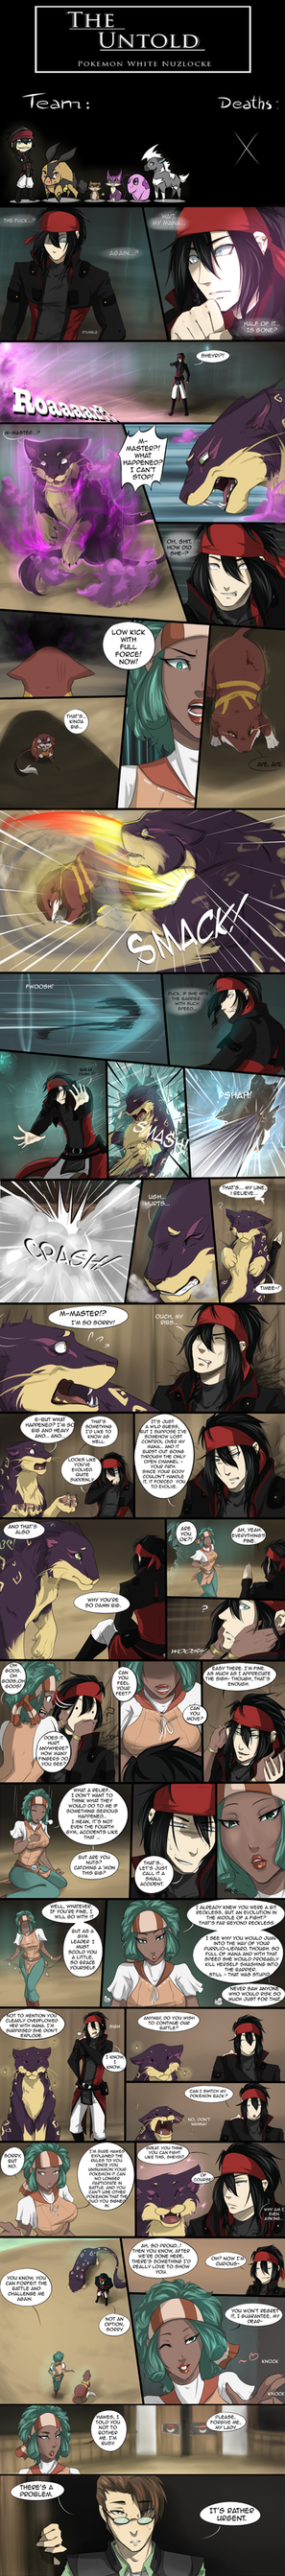 The Untold - part 31 by Antarija